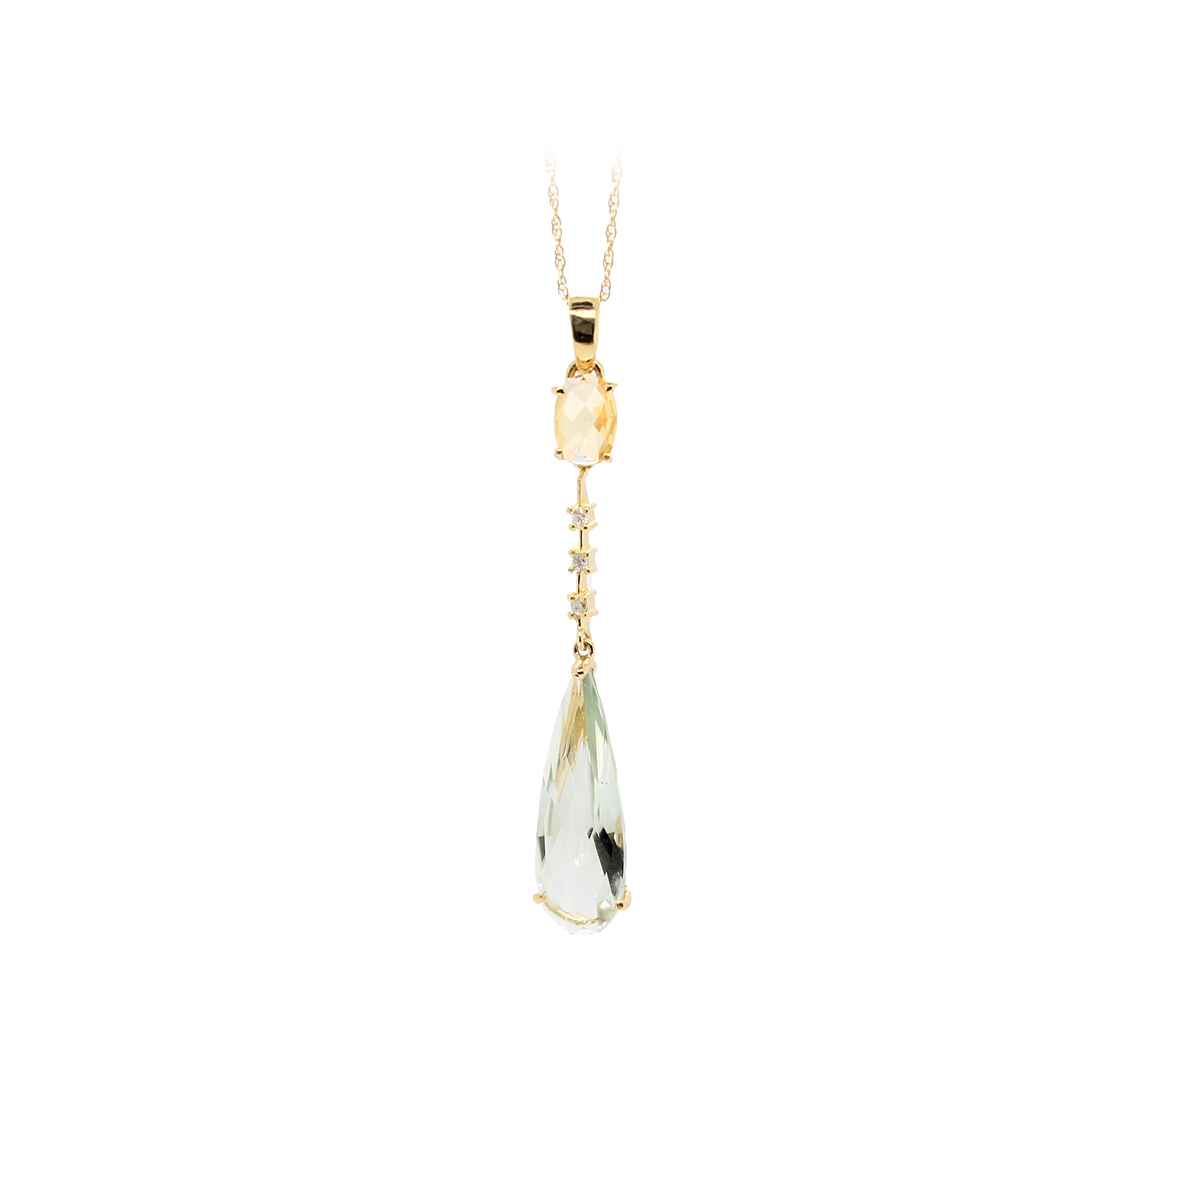 Vintage 14 Karat Yellow Gold Citrine, Diamond and Green Quartz Pendant Necklace